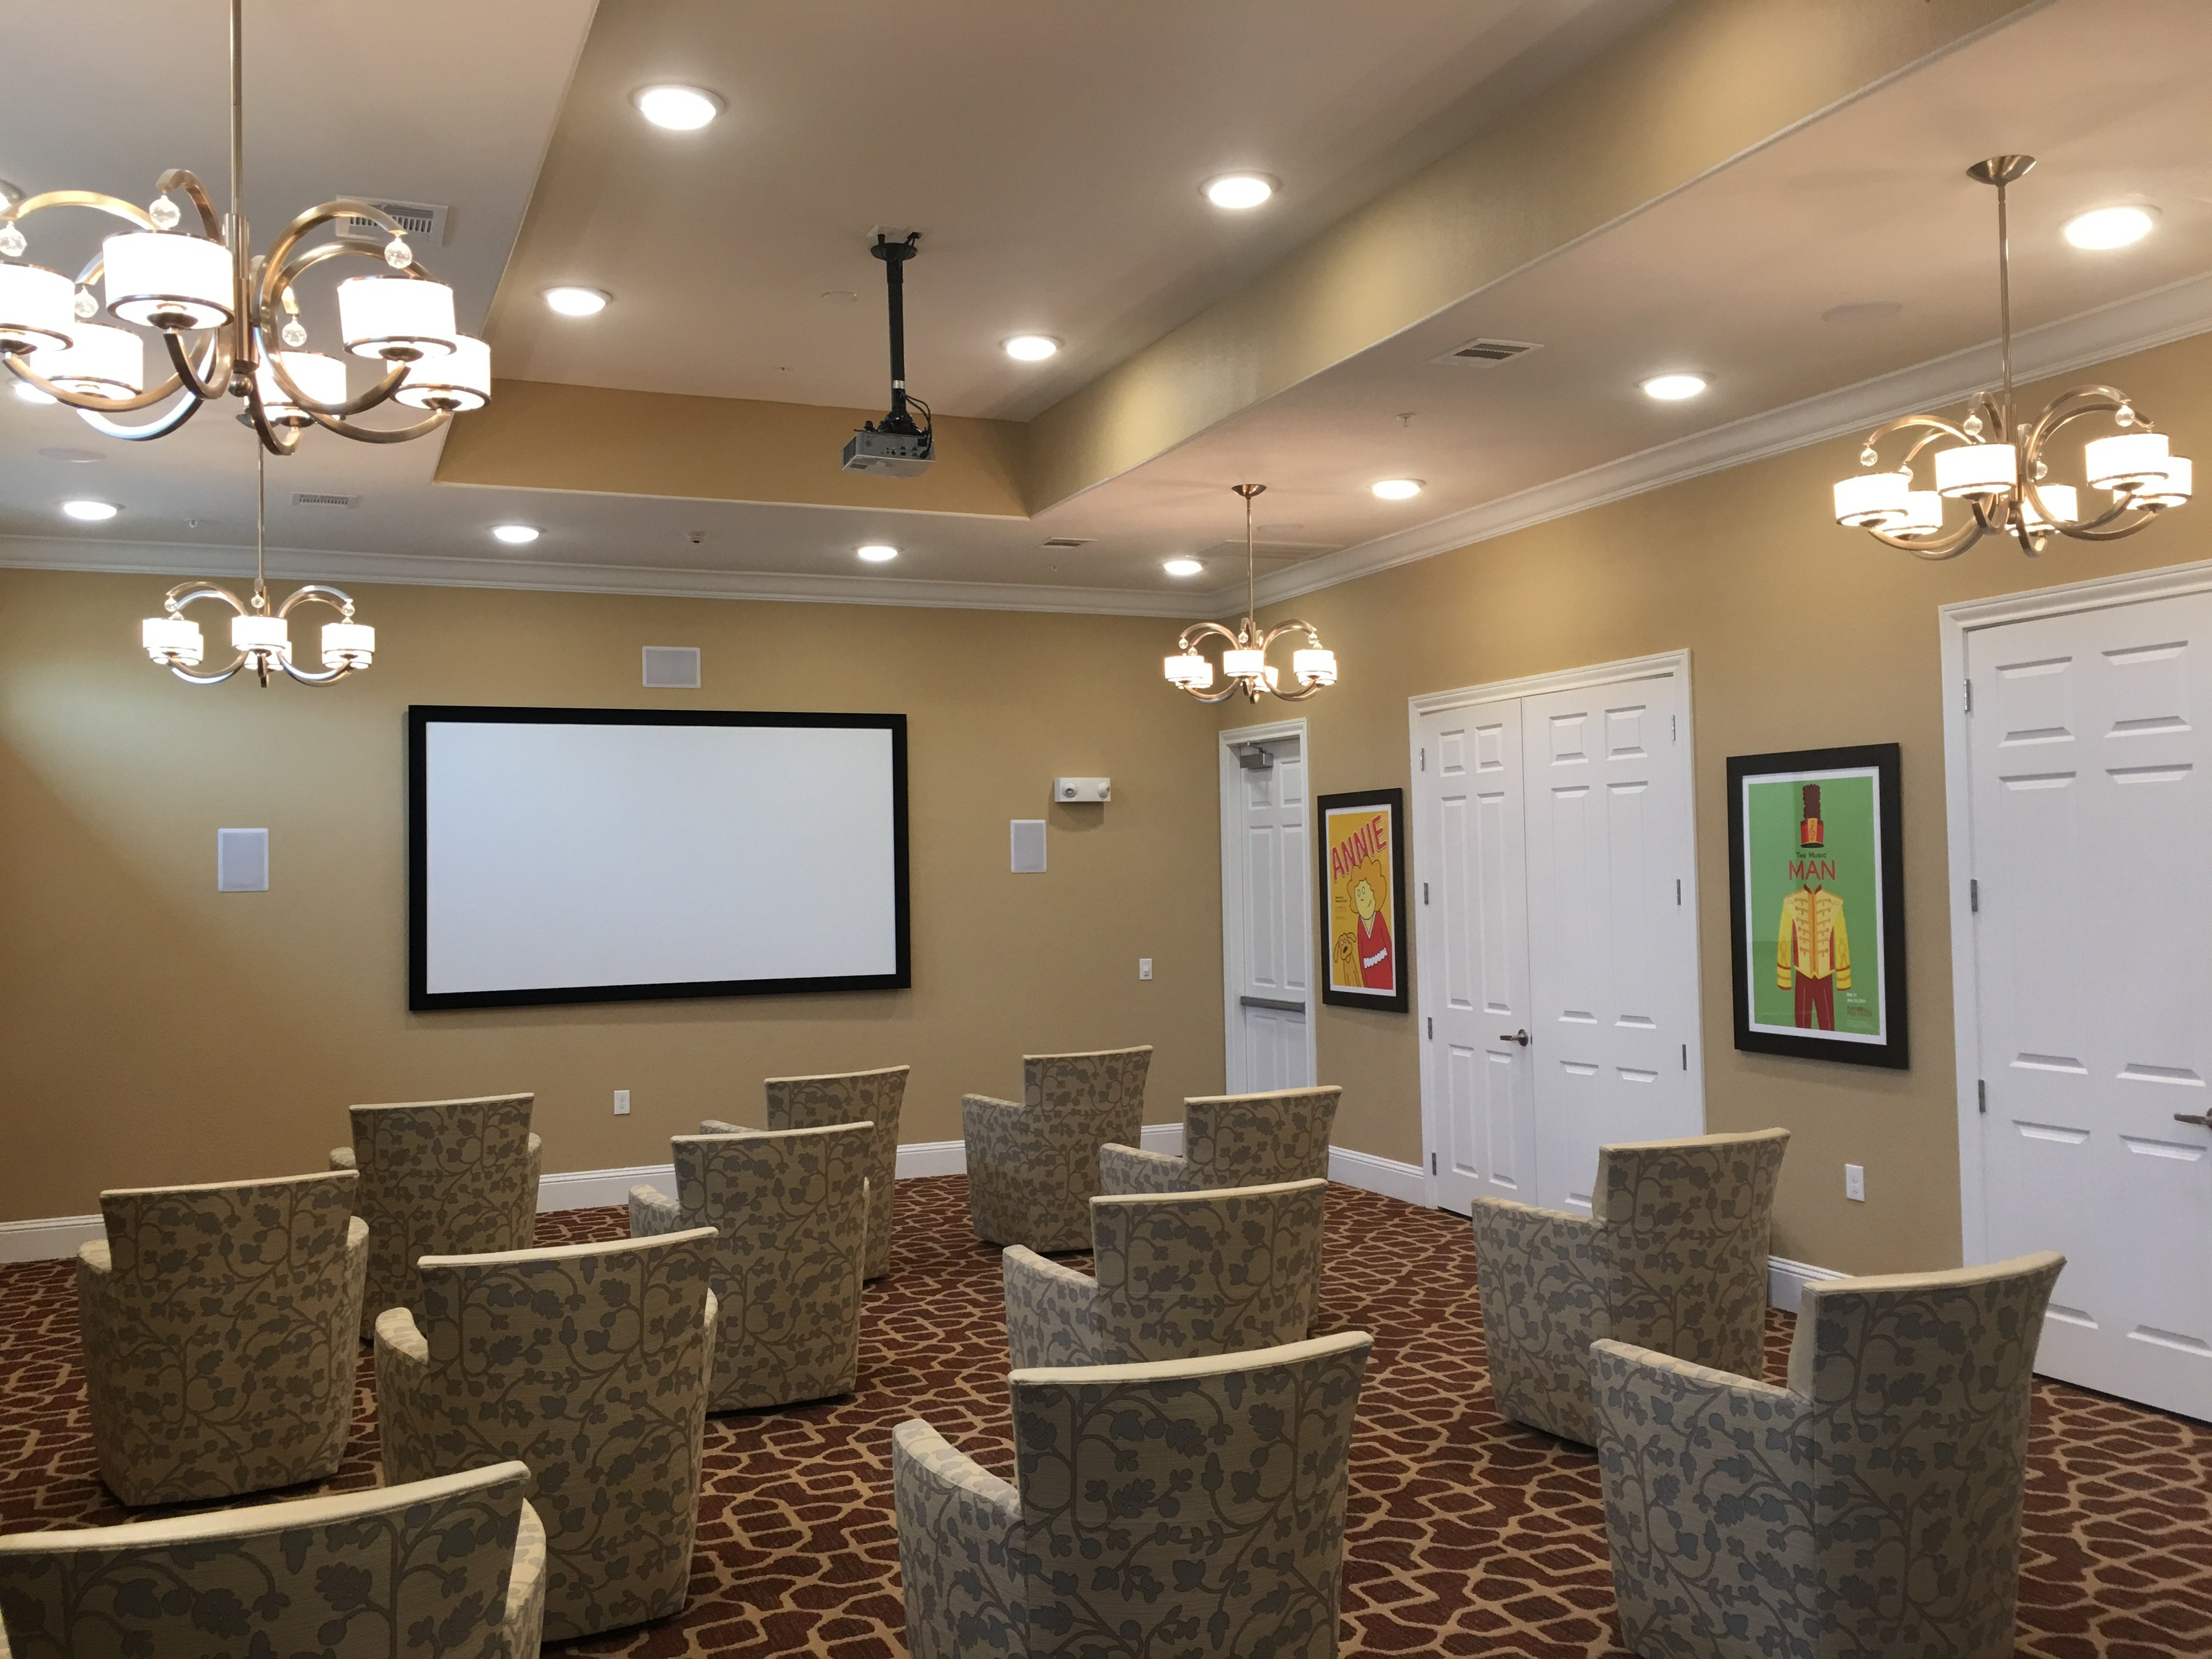 Networking It Low Voltage Wiring In The Woodlands Spring Katy Round